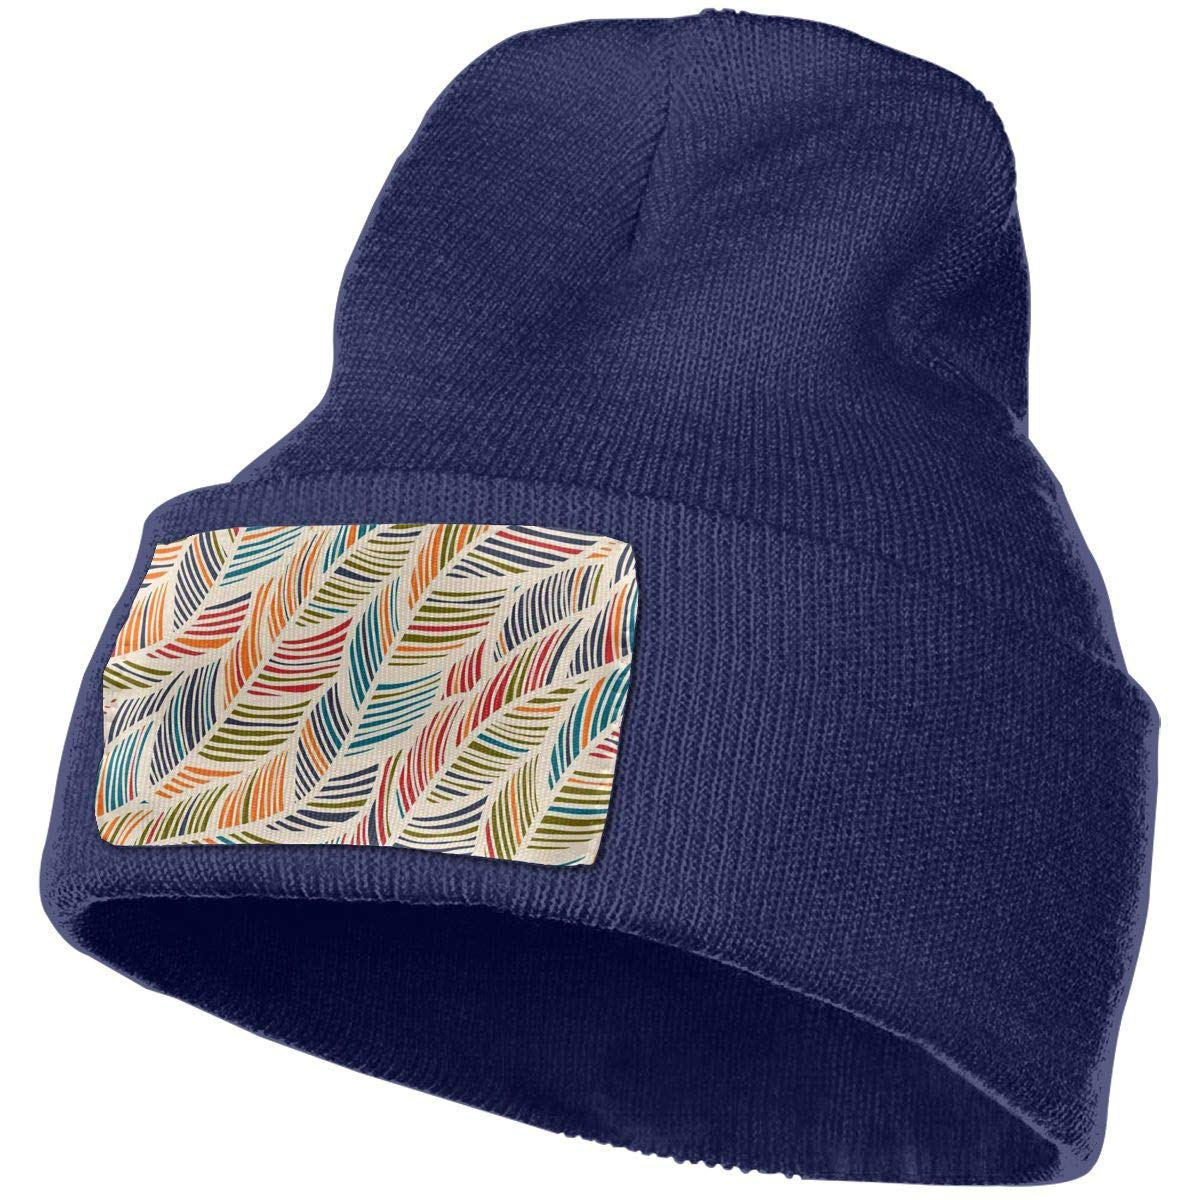 Crystal Goforth Color Stripe Unisex Warm Knitted Cap Wool Hats Beanies Caps